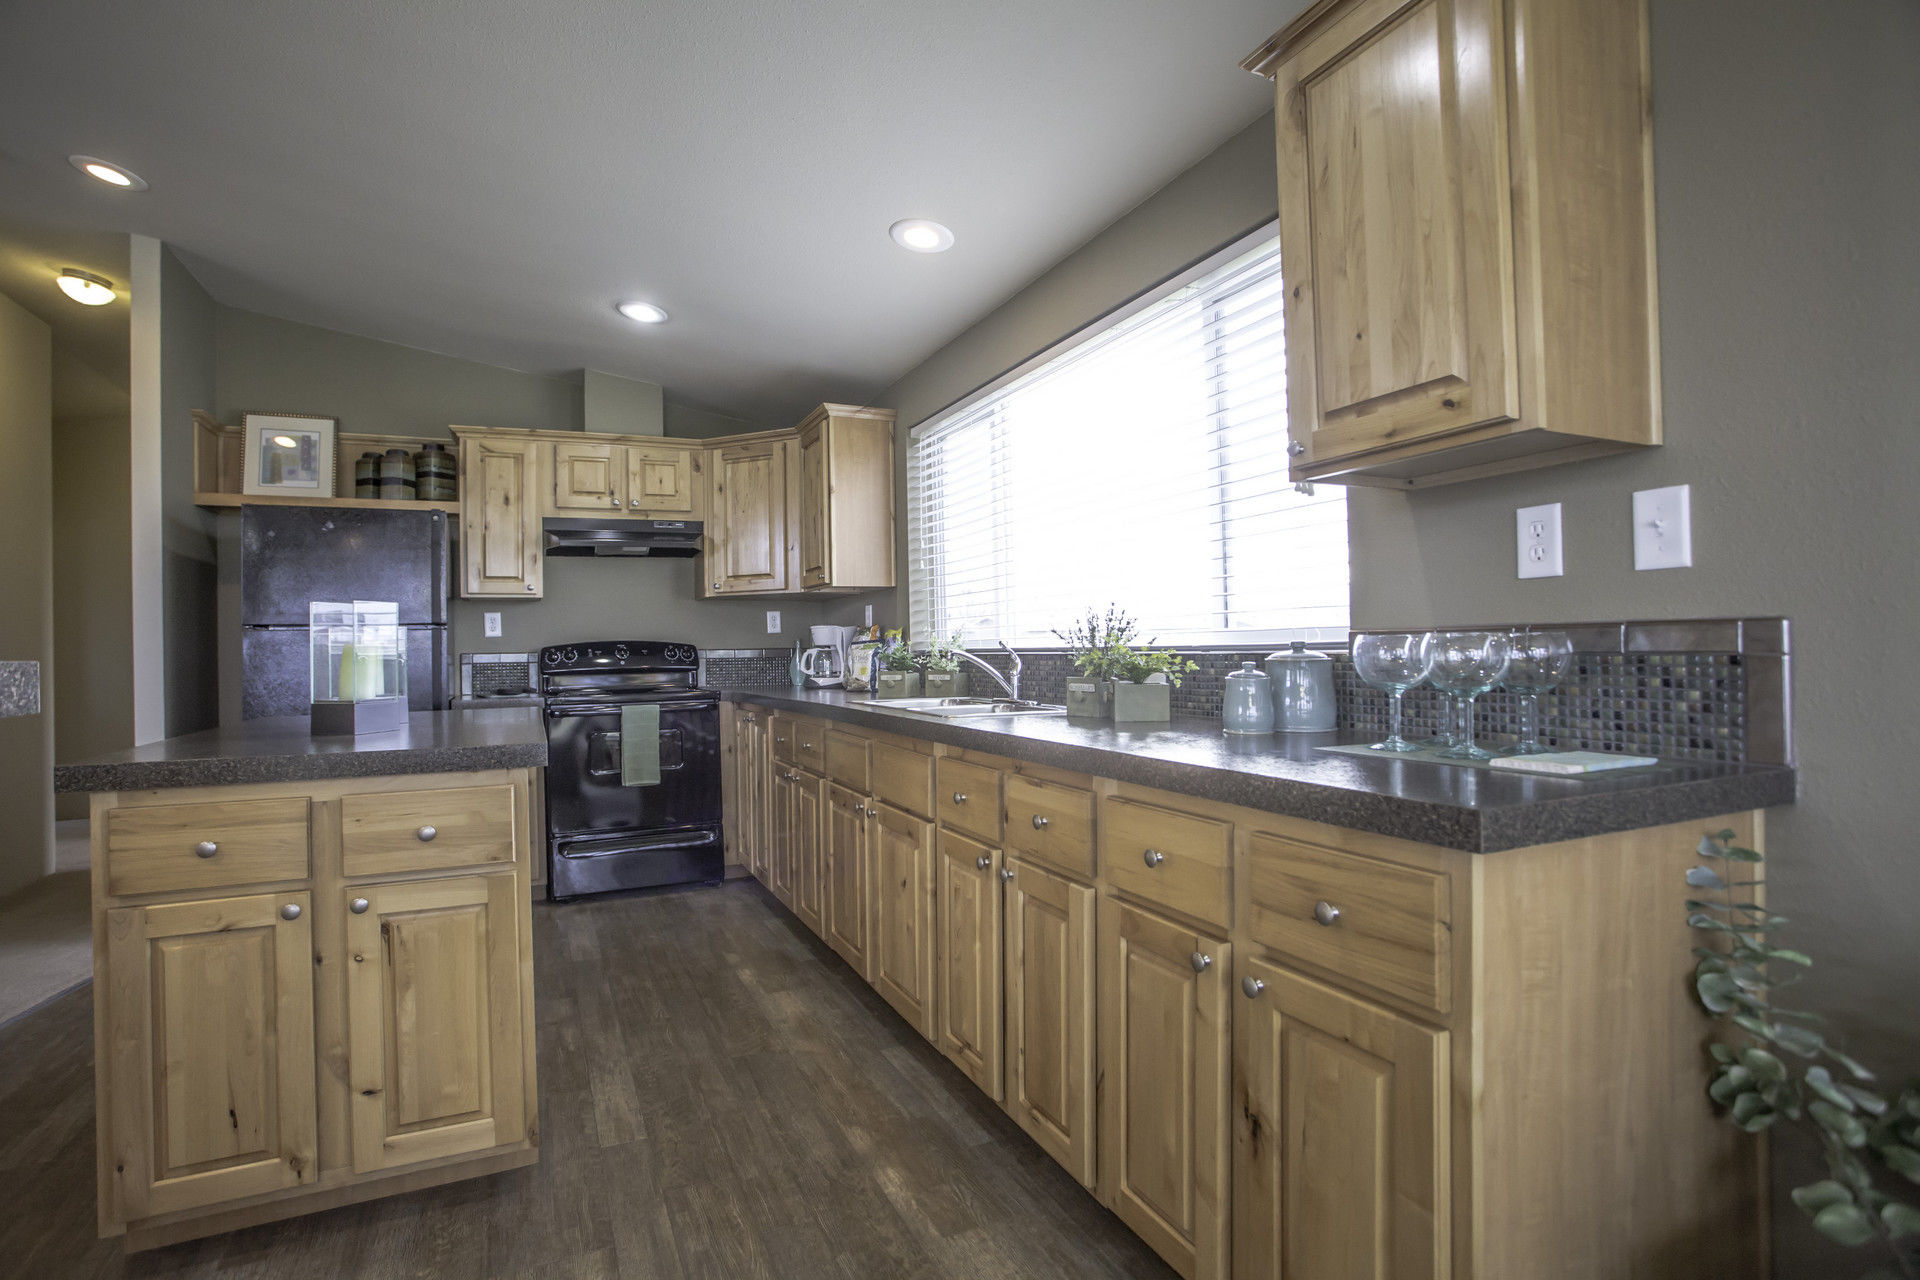 Modular Homes Oregon >> The Sunset Bay 3 bed / 2 bath / 1500 sqft affordable home ...